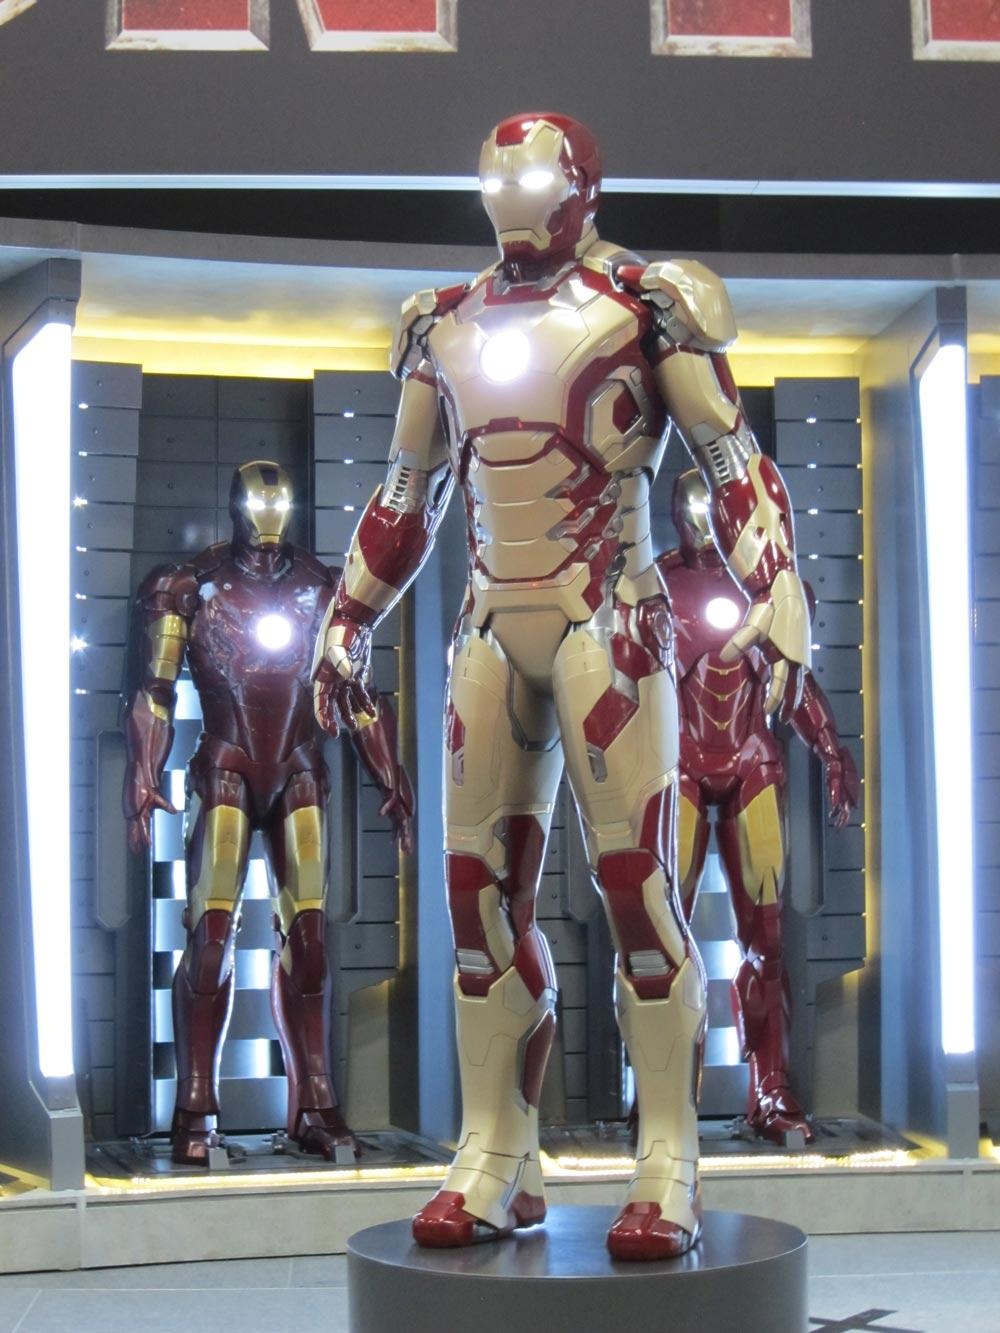 nouvelle armure mark iron man de Tony Stark